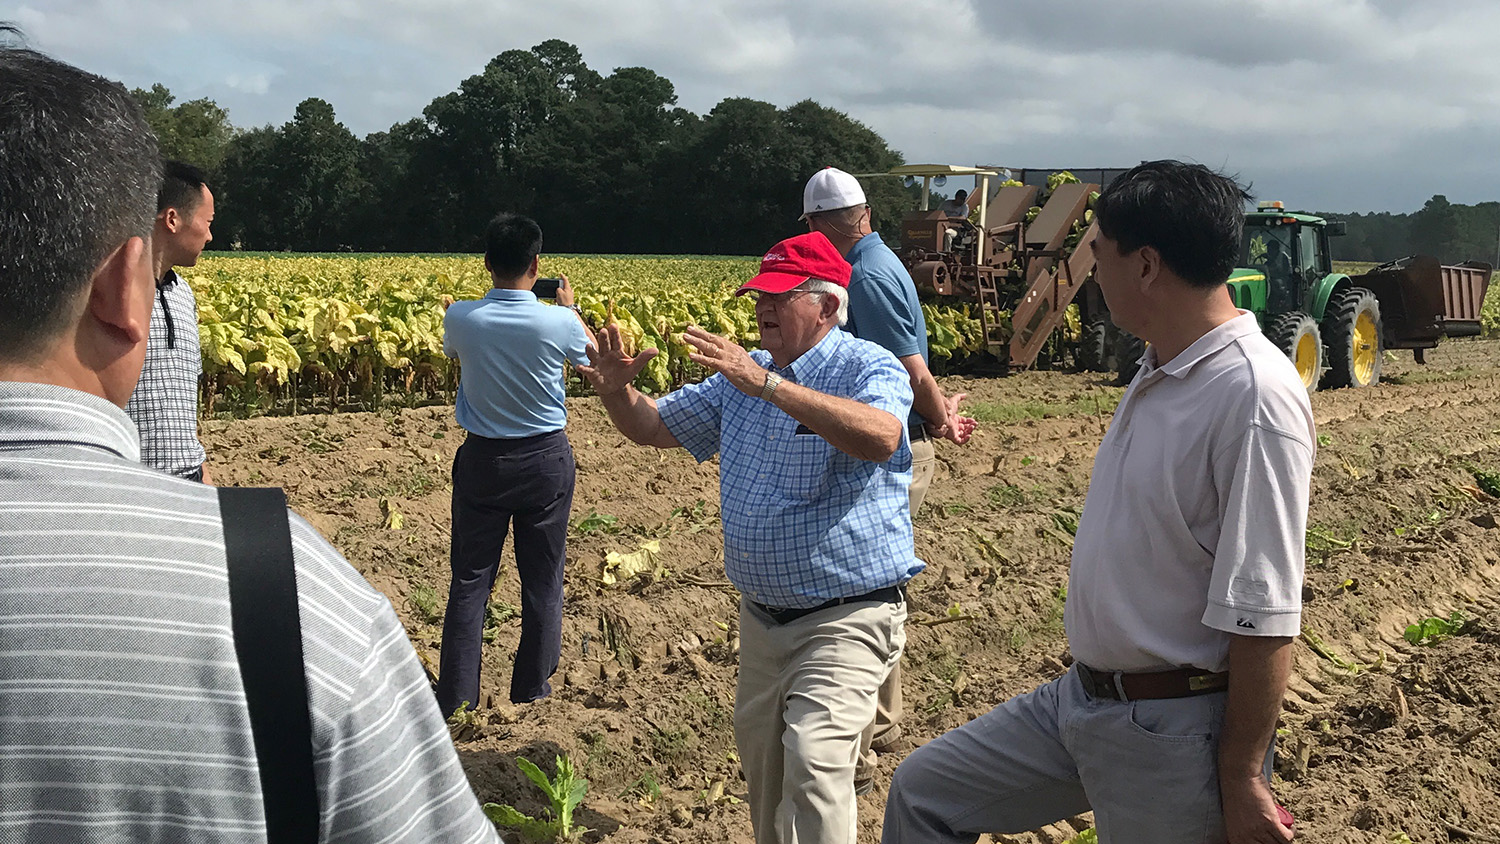 Group of people in a tobacco field that's being harvested